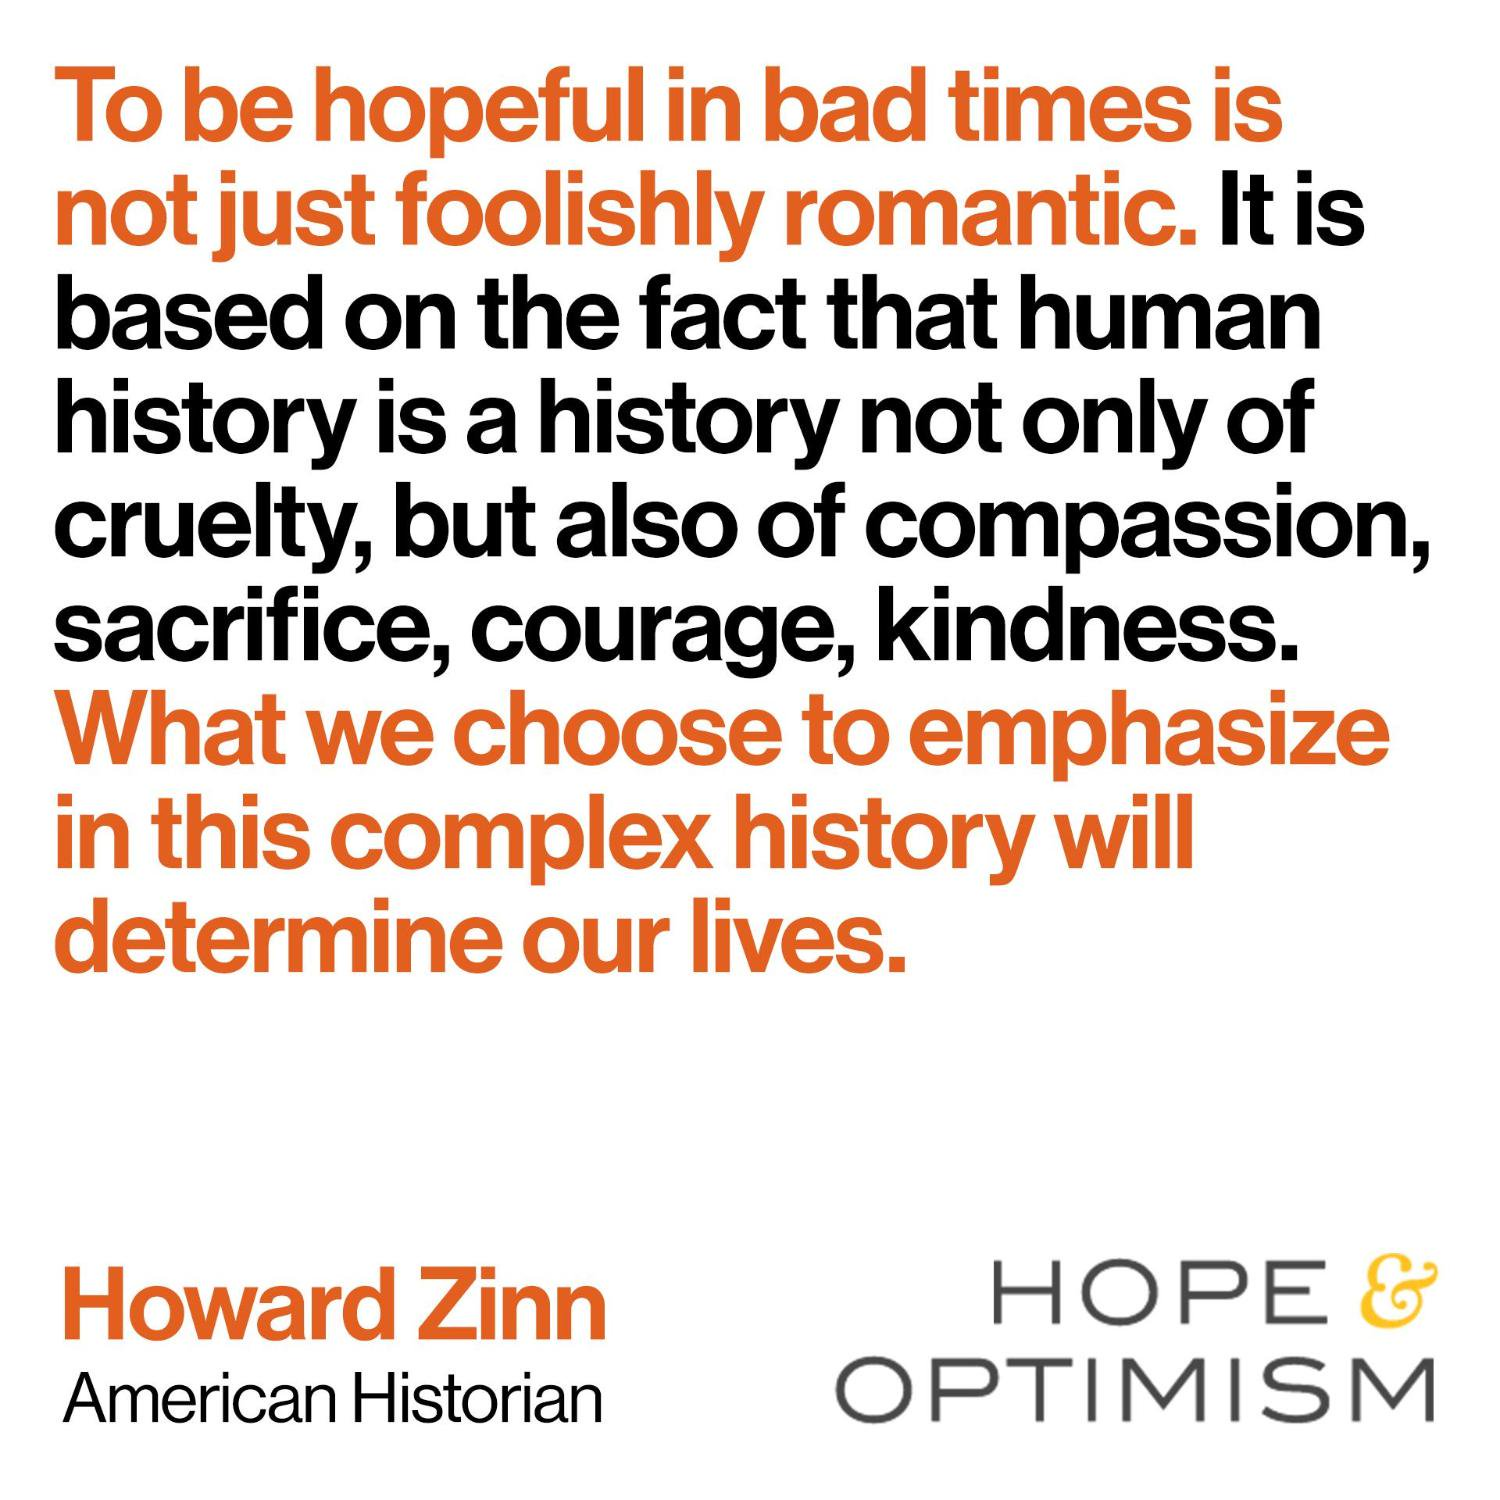 howard zinn hope and optimism.jpeg